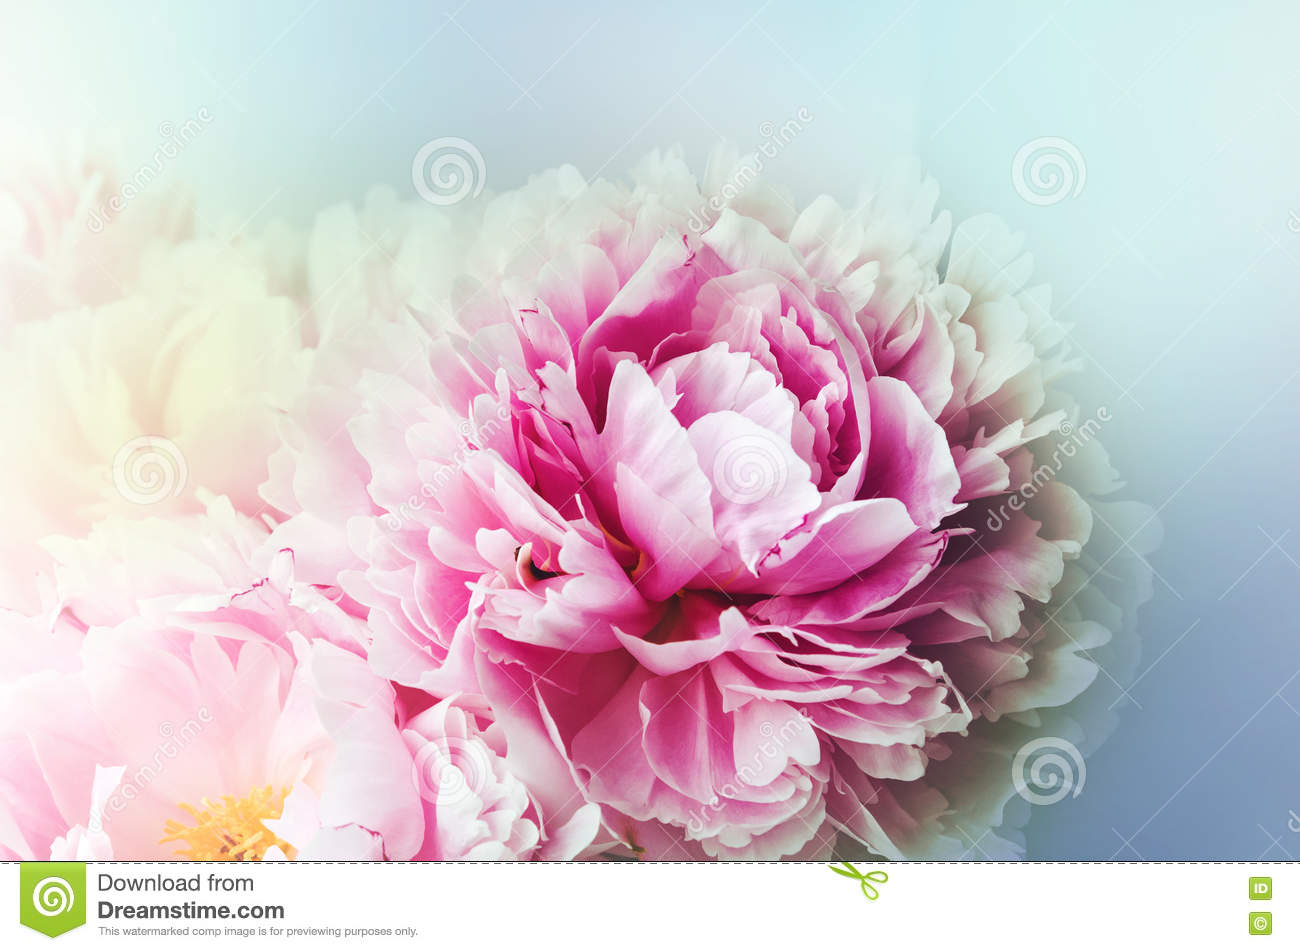 Floral Wallpaper Background From Flower Petals Trend Colors Pink